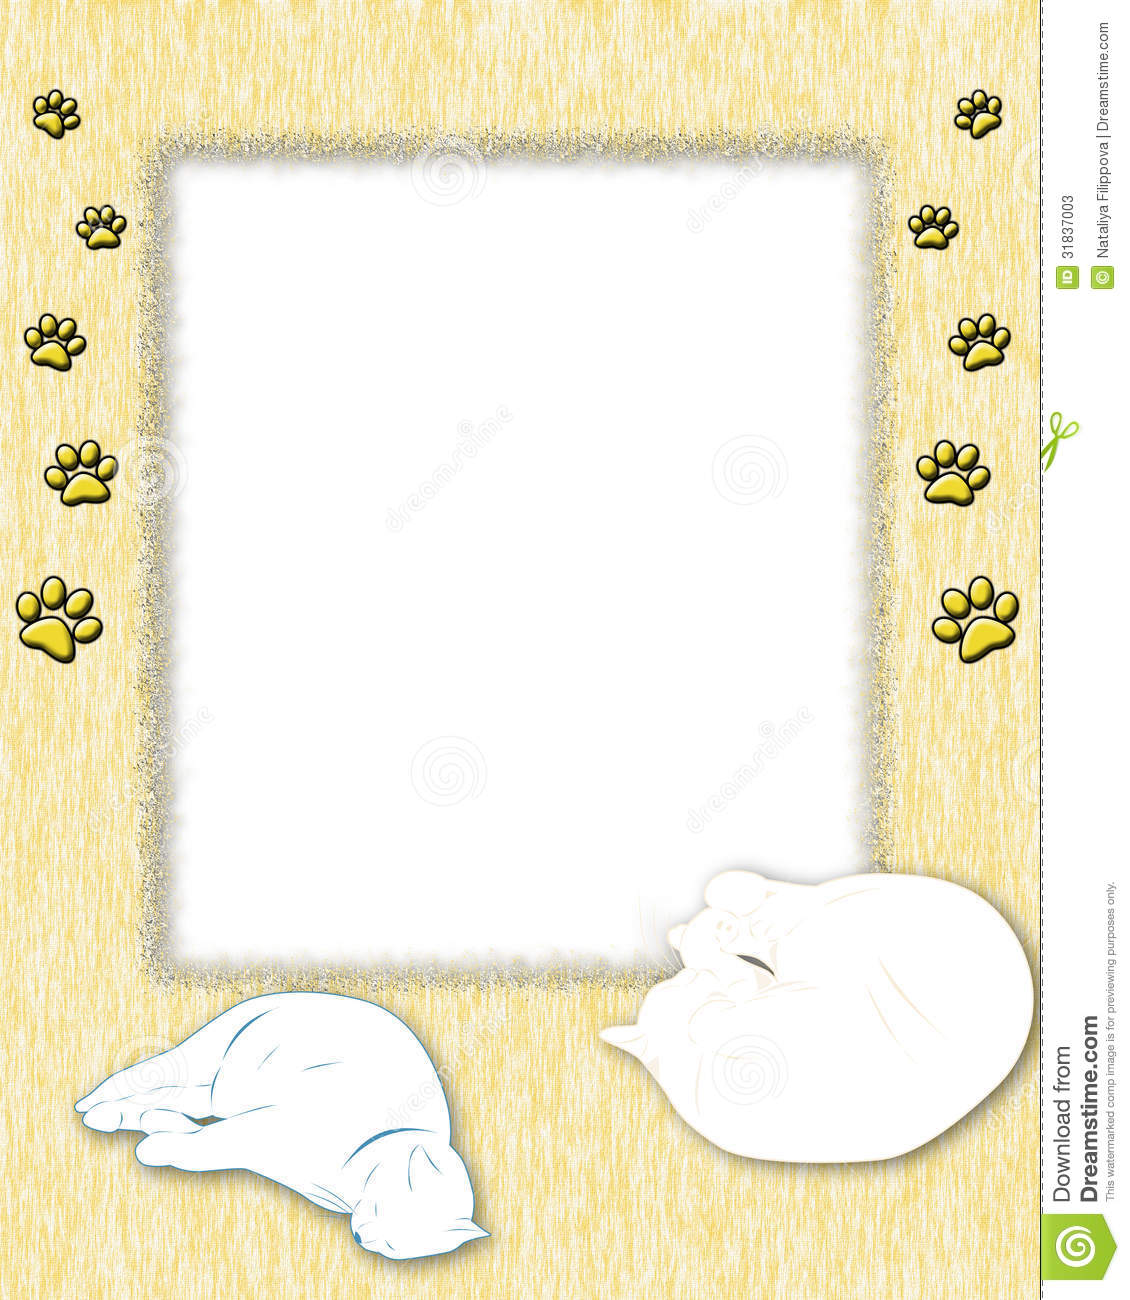 frame with cats stock photos image 31837003